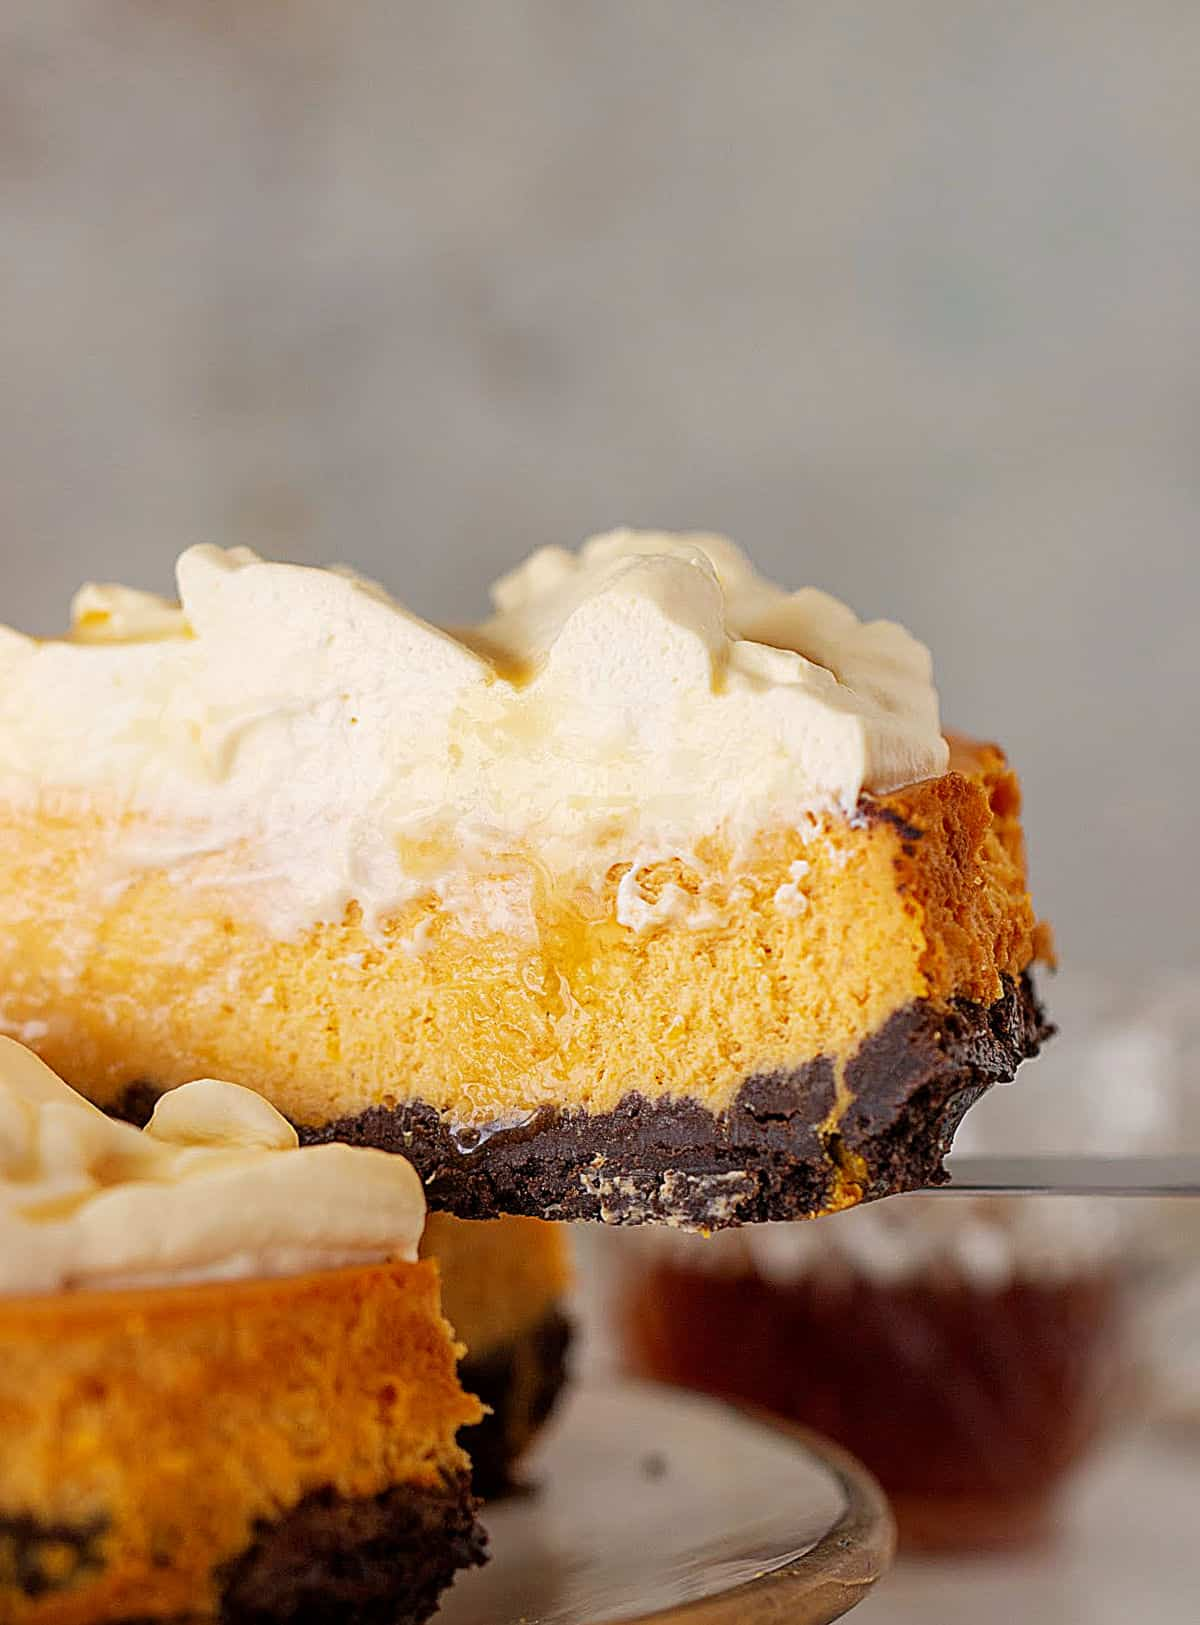 Partial slice of pumpkin cheesecake with whipped cream and chocolate crust, grey background